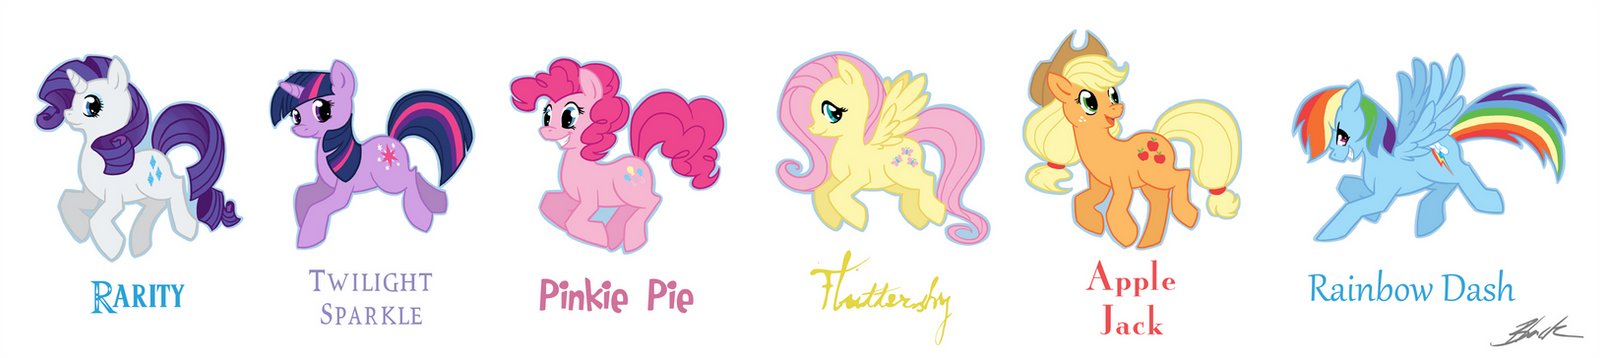 My Little Pony, Main Six Royalty ~ by Angelicsweetheart on DeviantArt